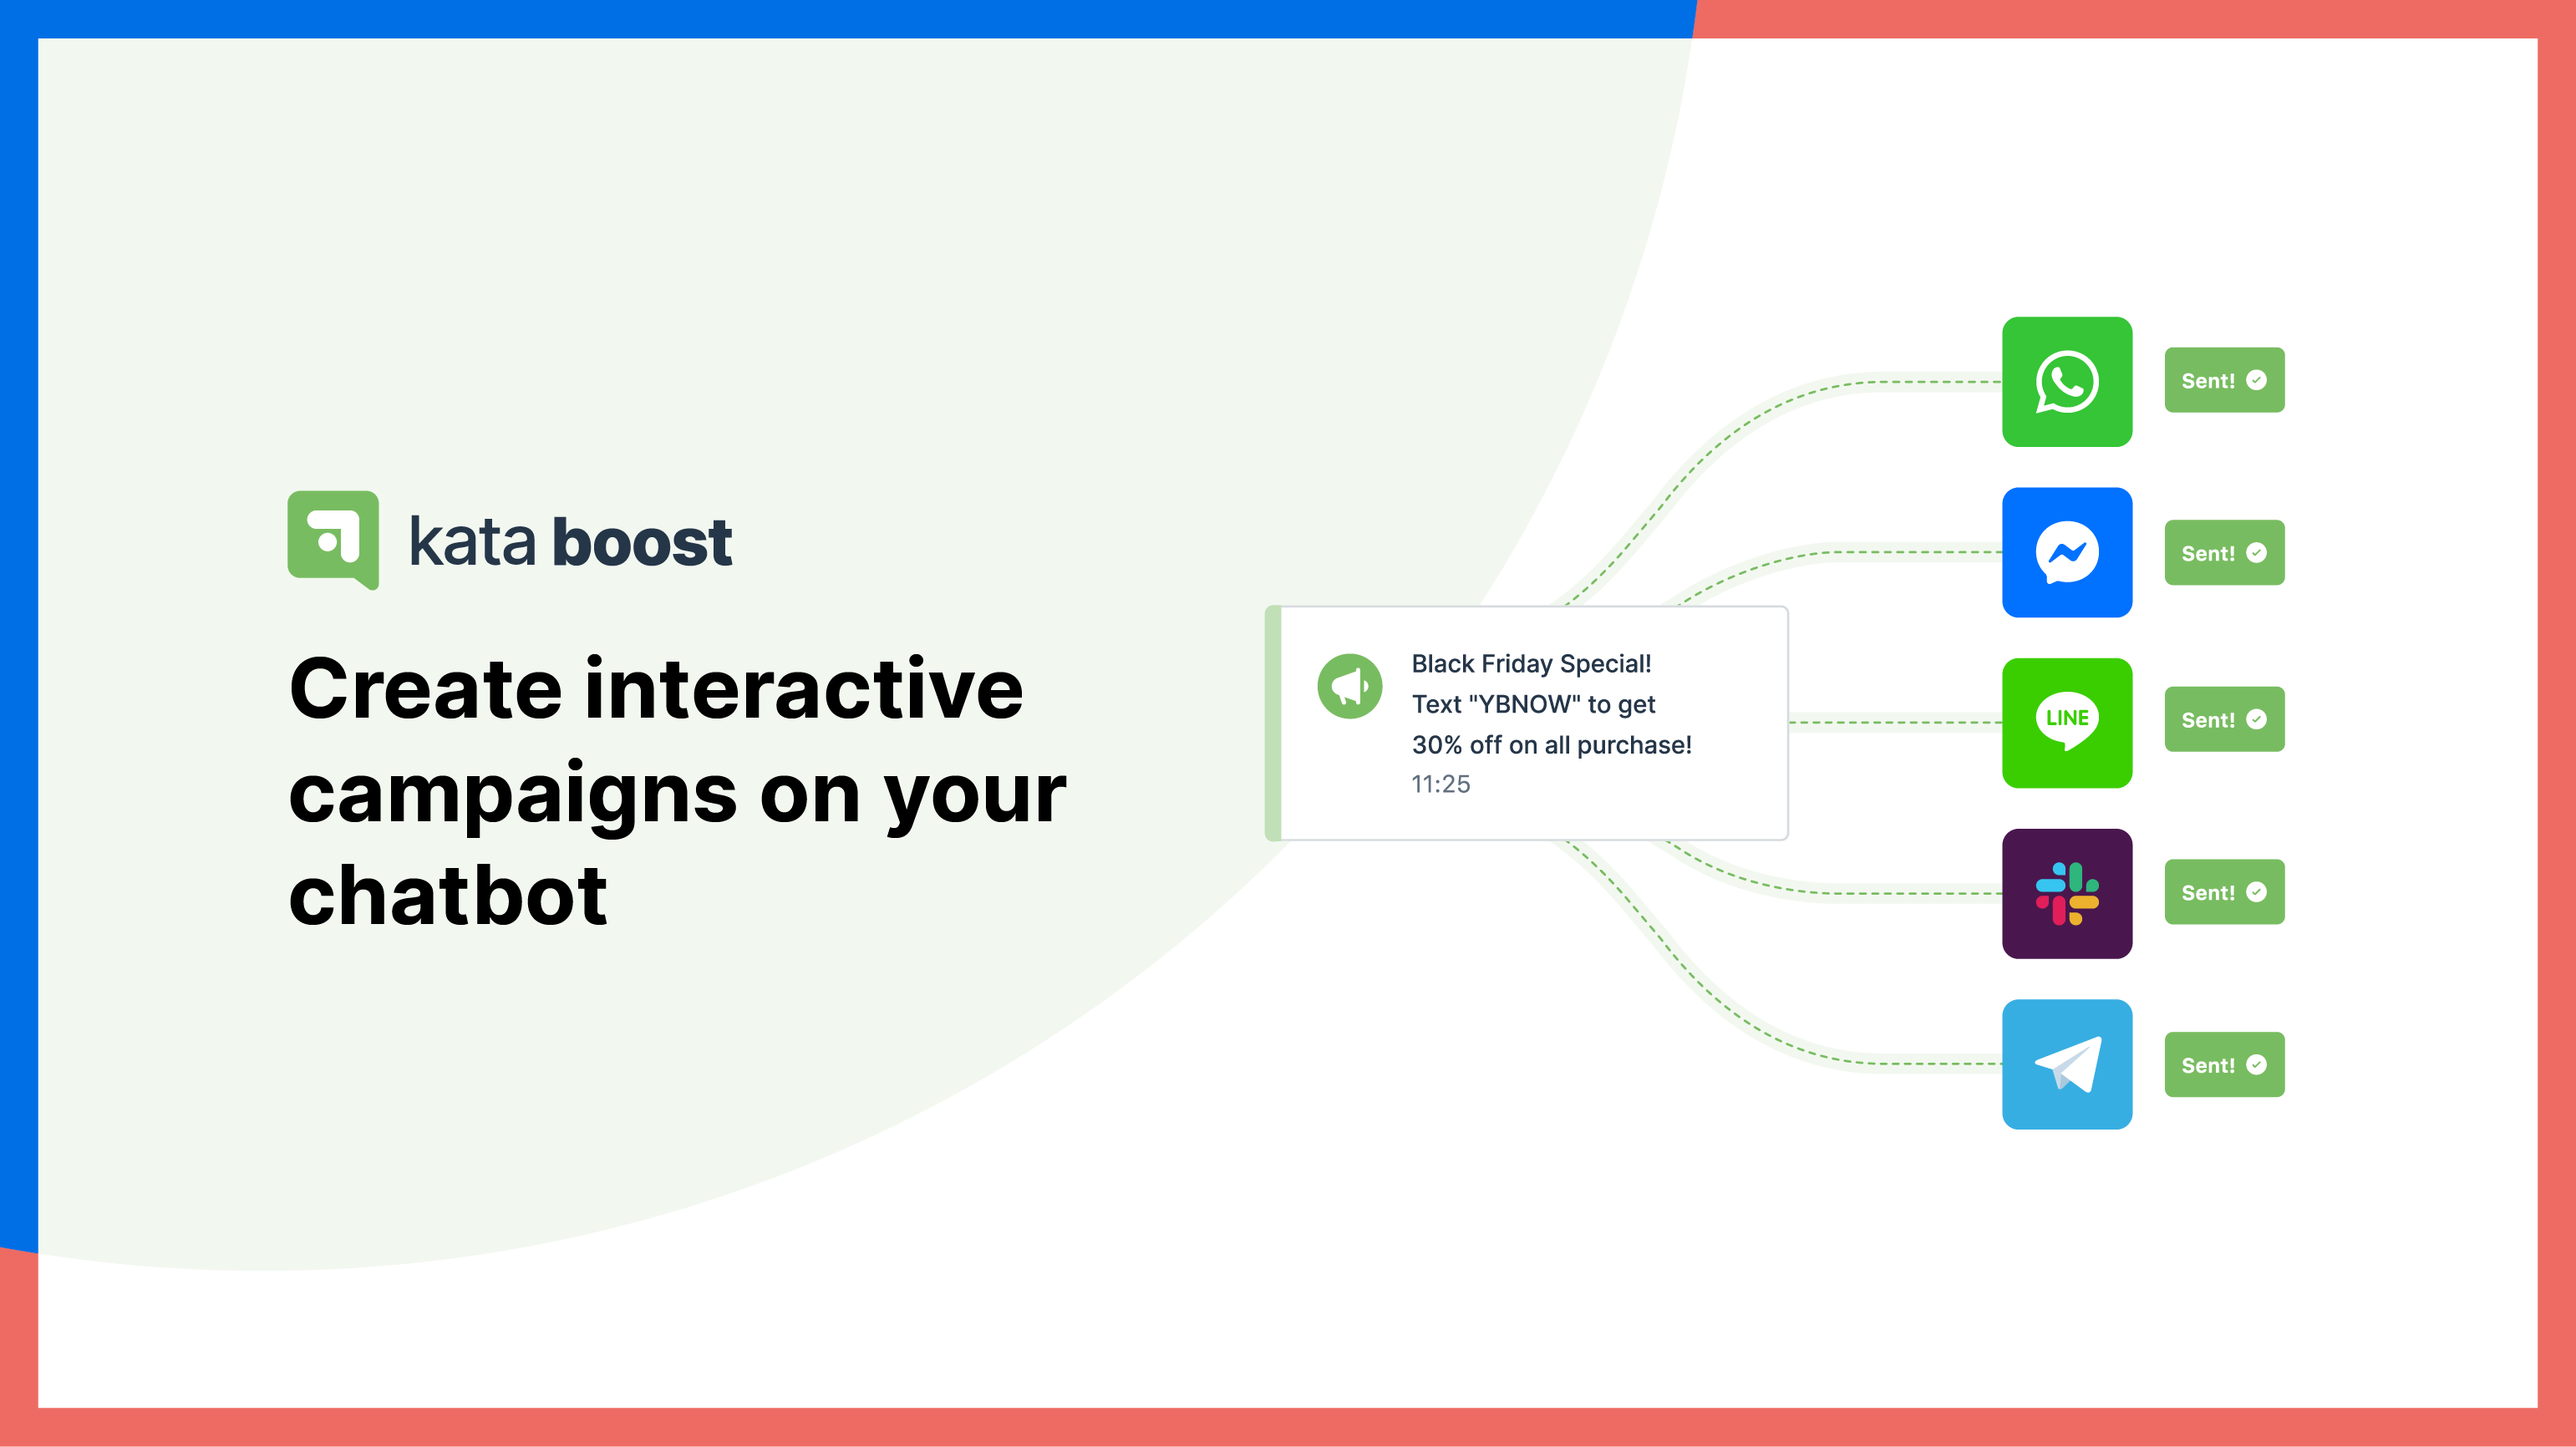 Create and run interactive marketing campaigns on your chatbot with Kata Boost.